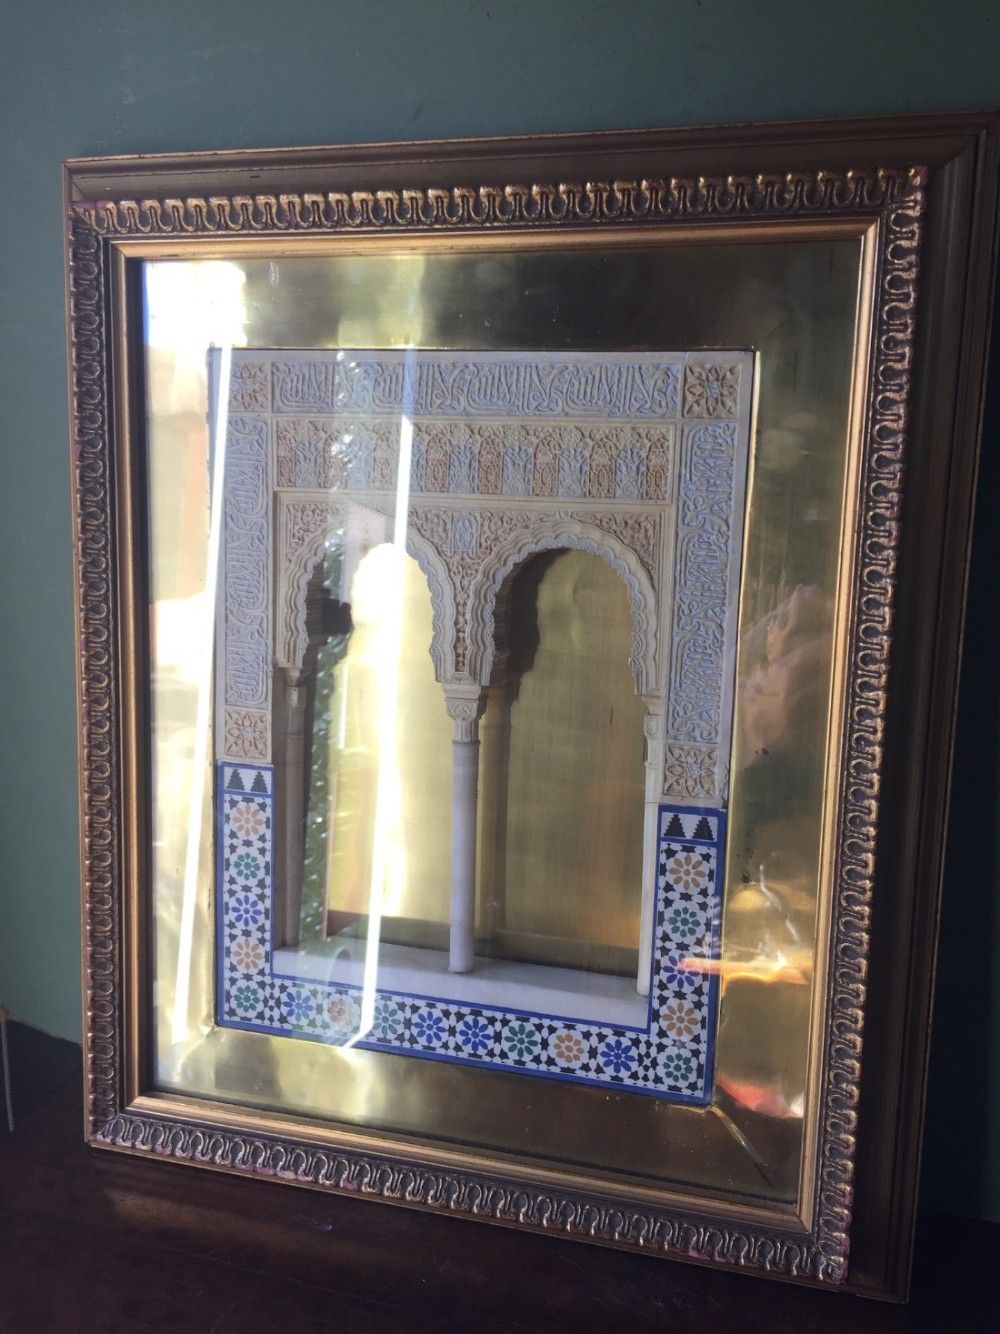 early c20th framed gesso or stucco polychrome decorated architectural plaque from alhambra